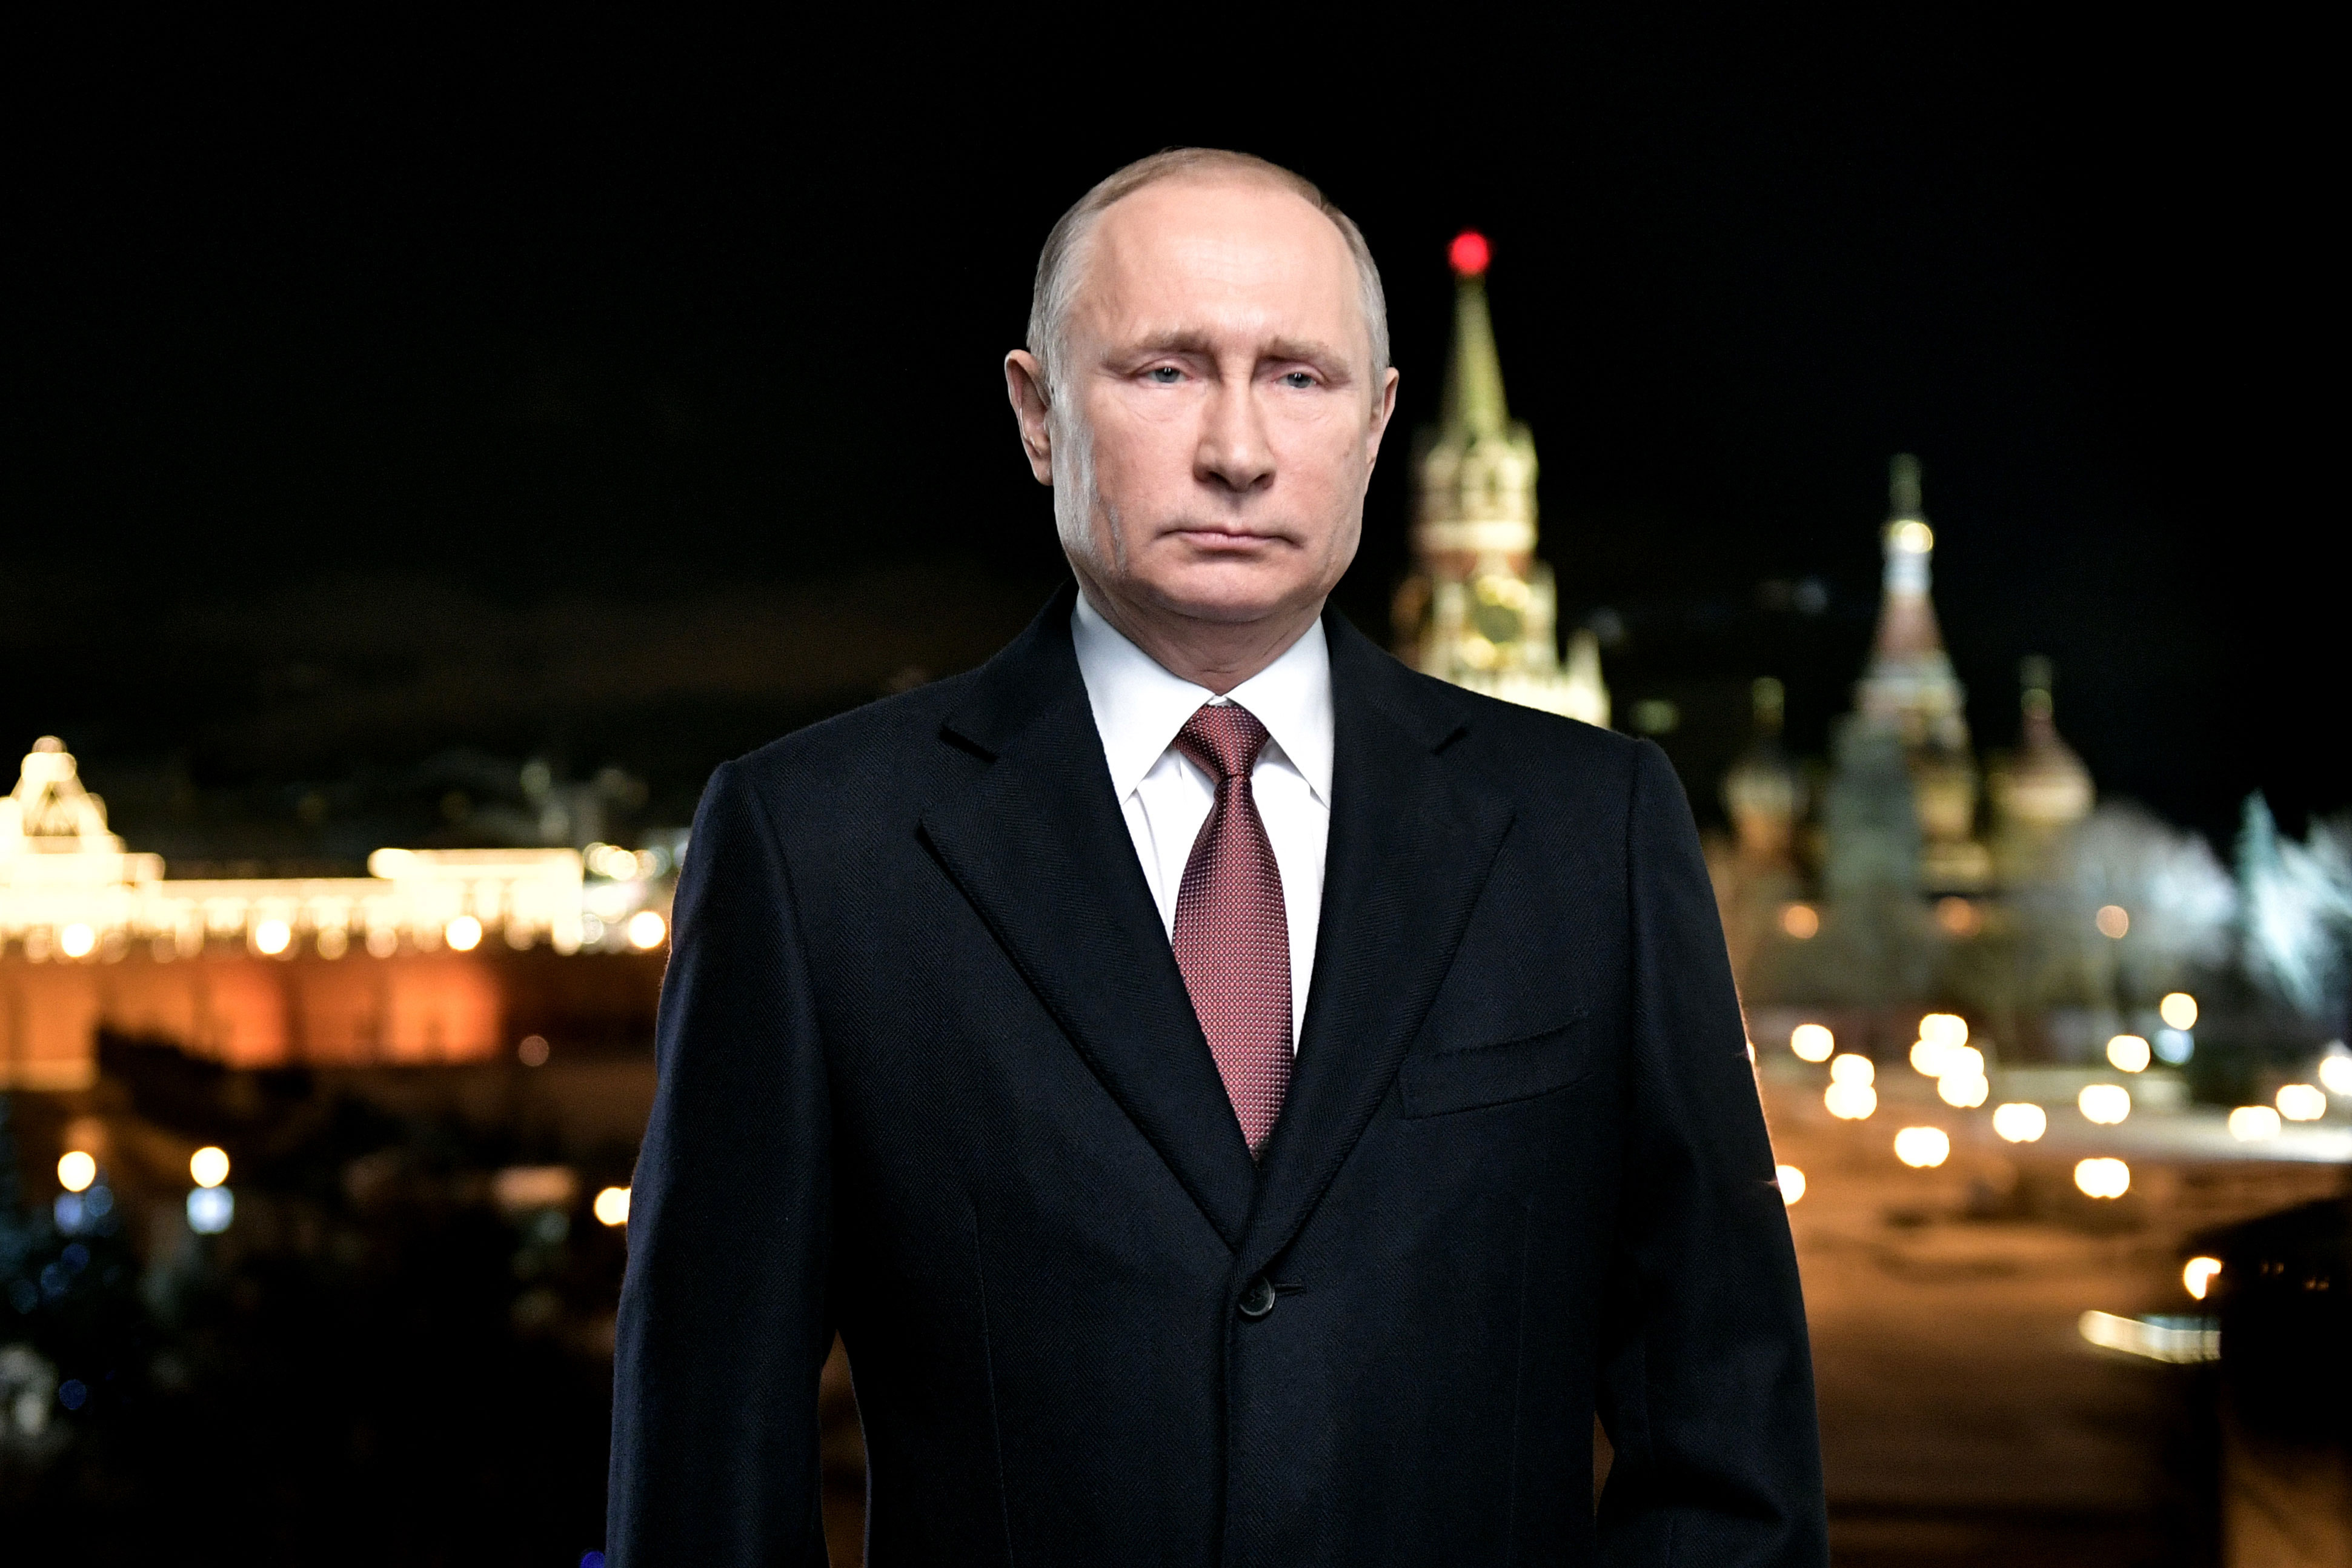 Putin: Disruption of a performance or exhibition is absolutely unacceptable 12/02/2016 5